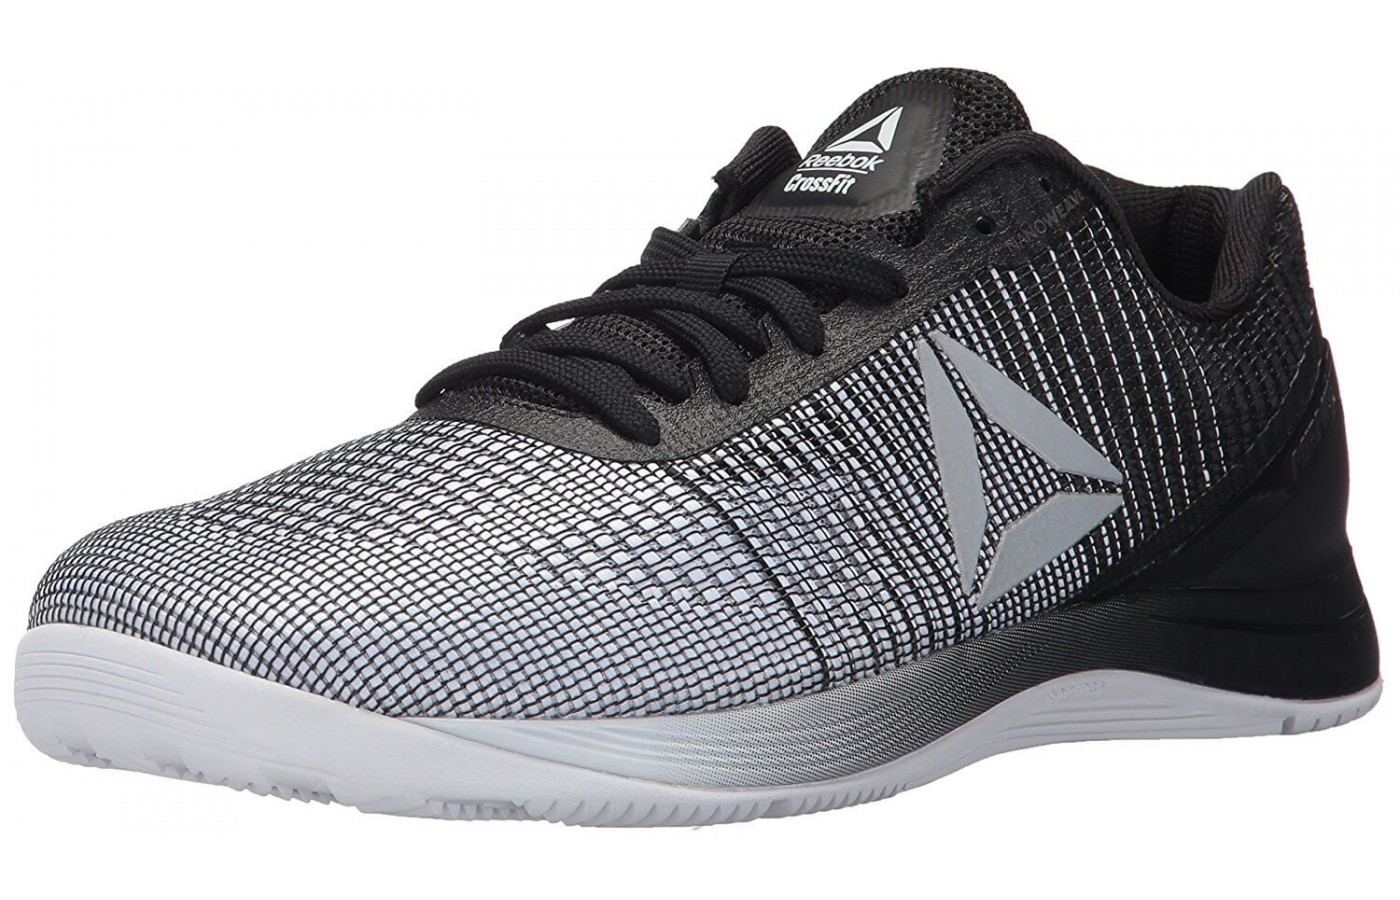 ffd1ba6b179f The Reebok Crossfit Nano 7 Weave was designed to fix mistakes in the  original design.